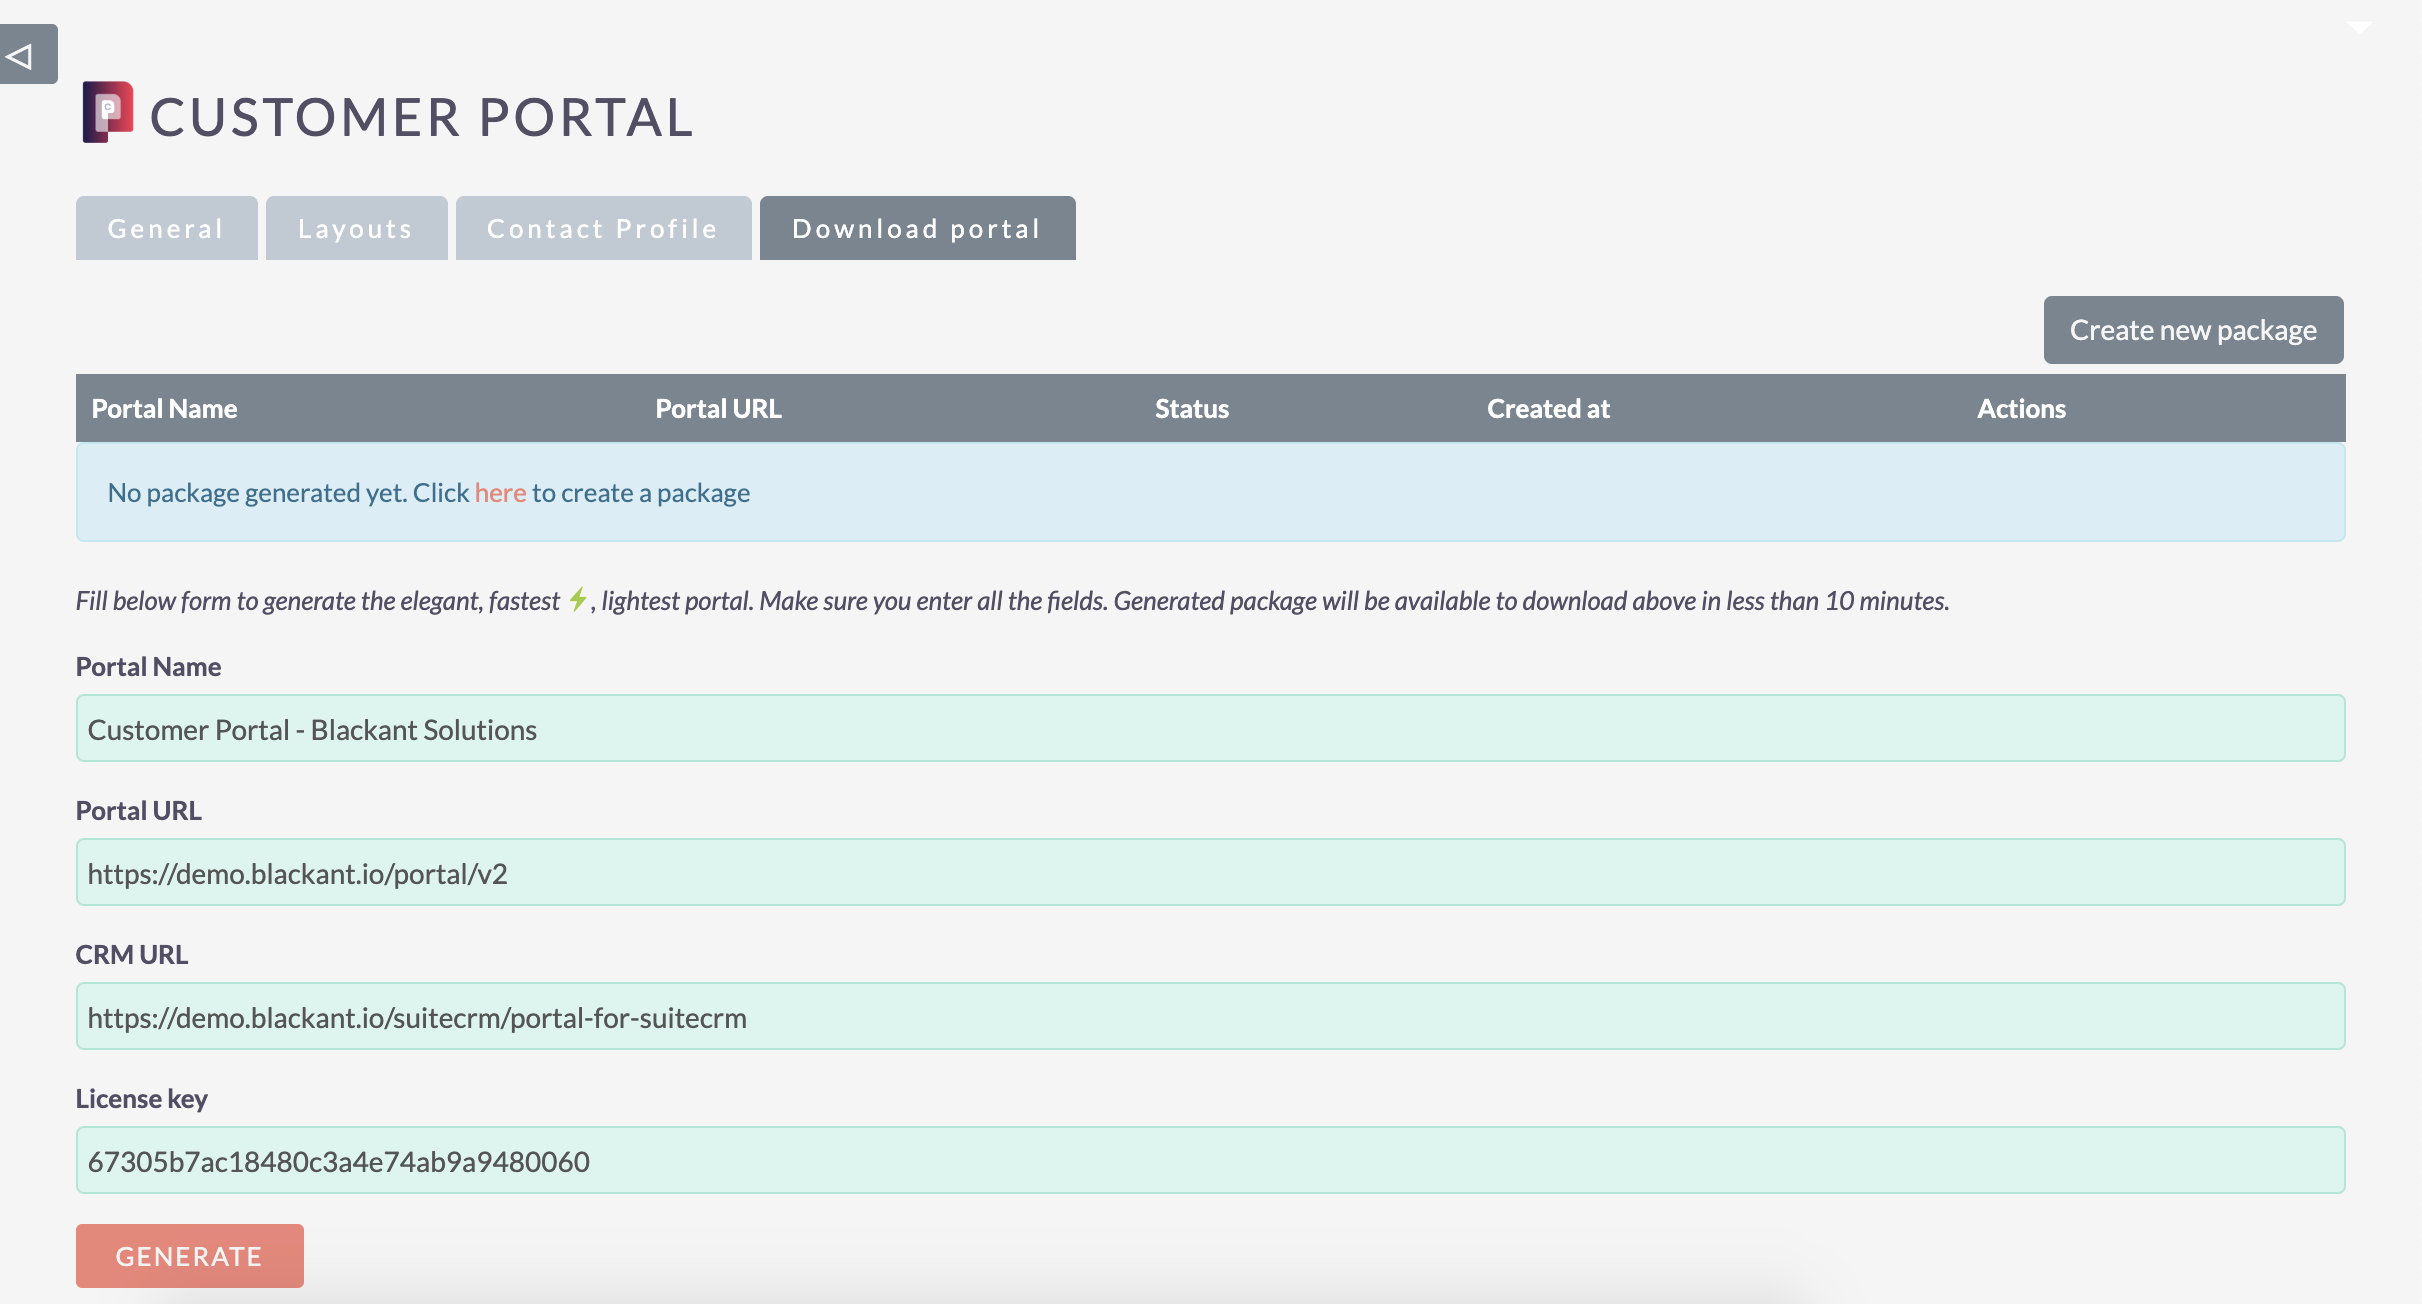 Customer portal for SuiteCRM - Package generation